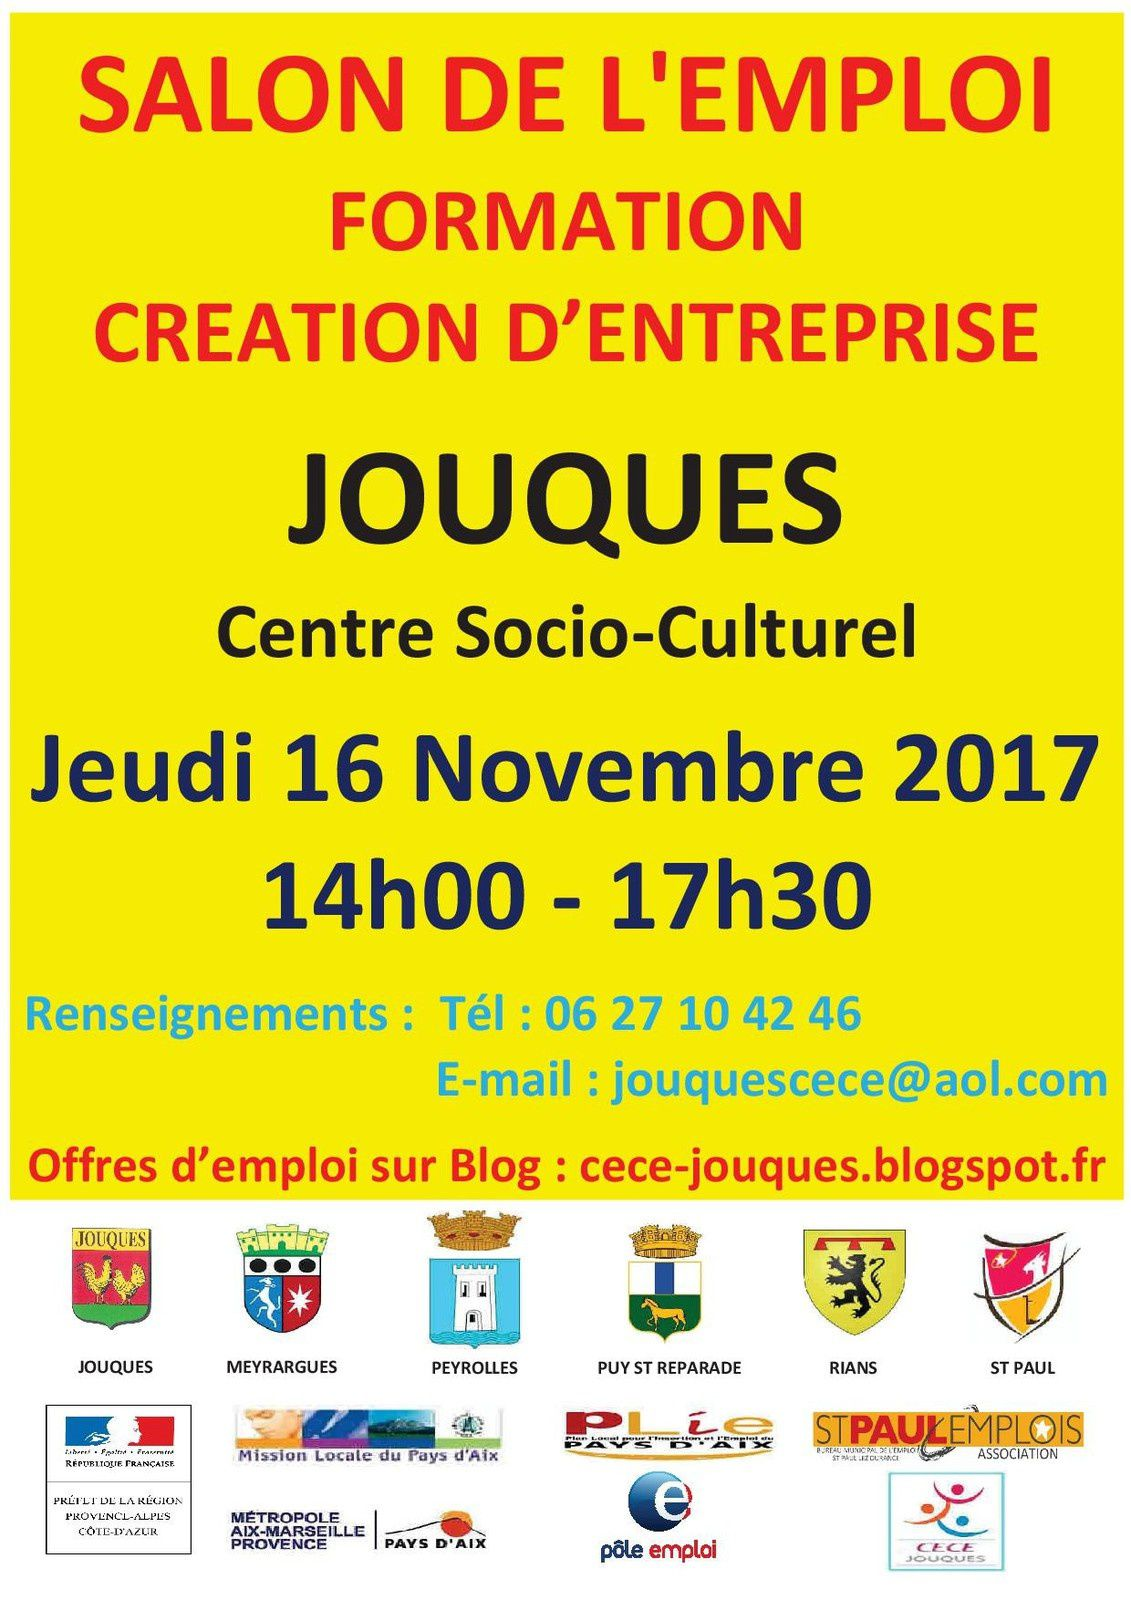 Salon de l 39 emploi de la formation et creation d 39 entreprise for Salon recrutement 2017